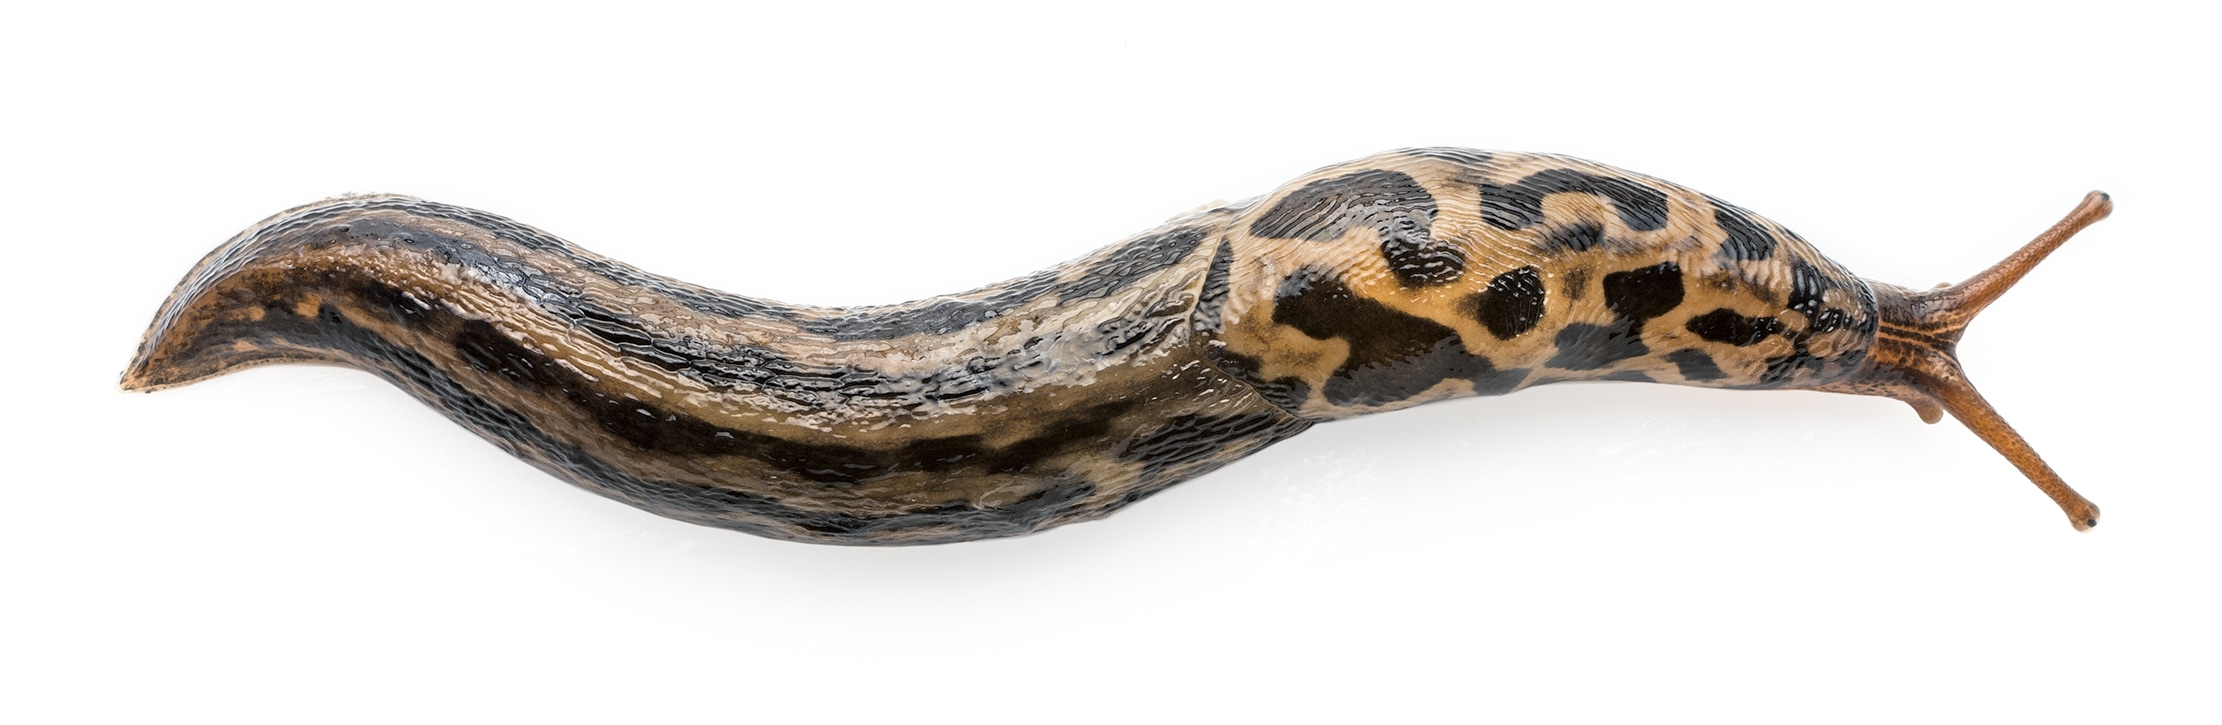 Lateral image of a spotted Ariolimax columbianus